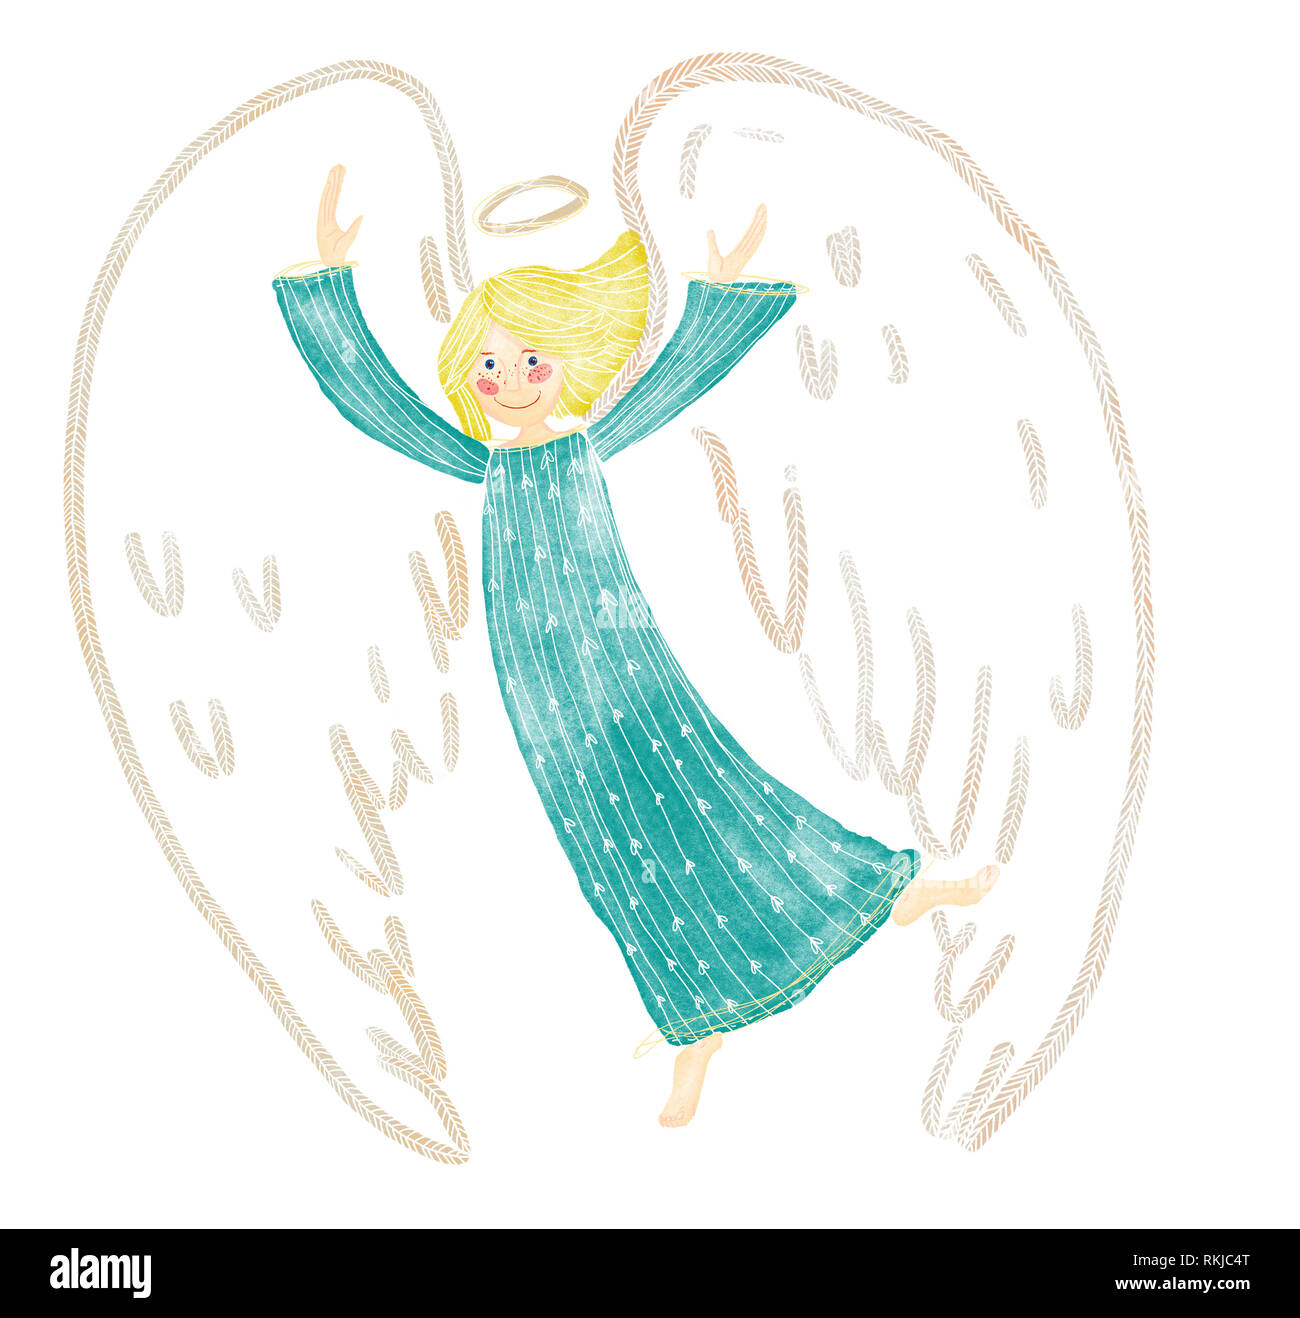 A digital watecolor illustration of happy, dancing guardian angel in shades of blue, turquoise, beige, brown color. Blonde hair. - Stock Image